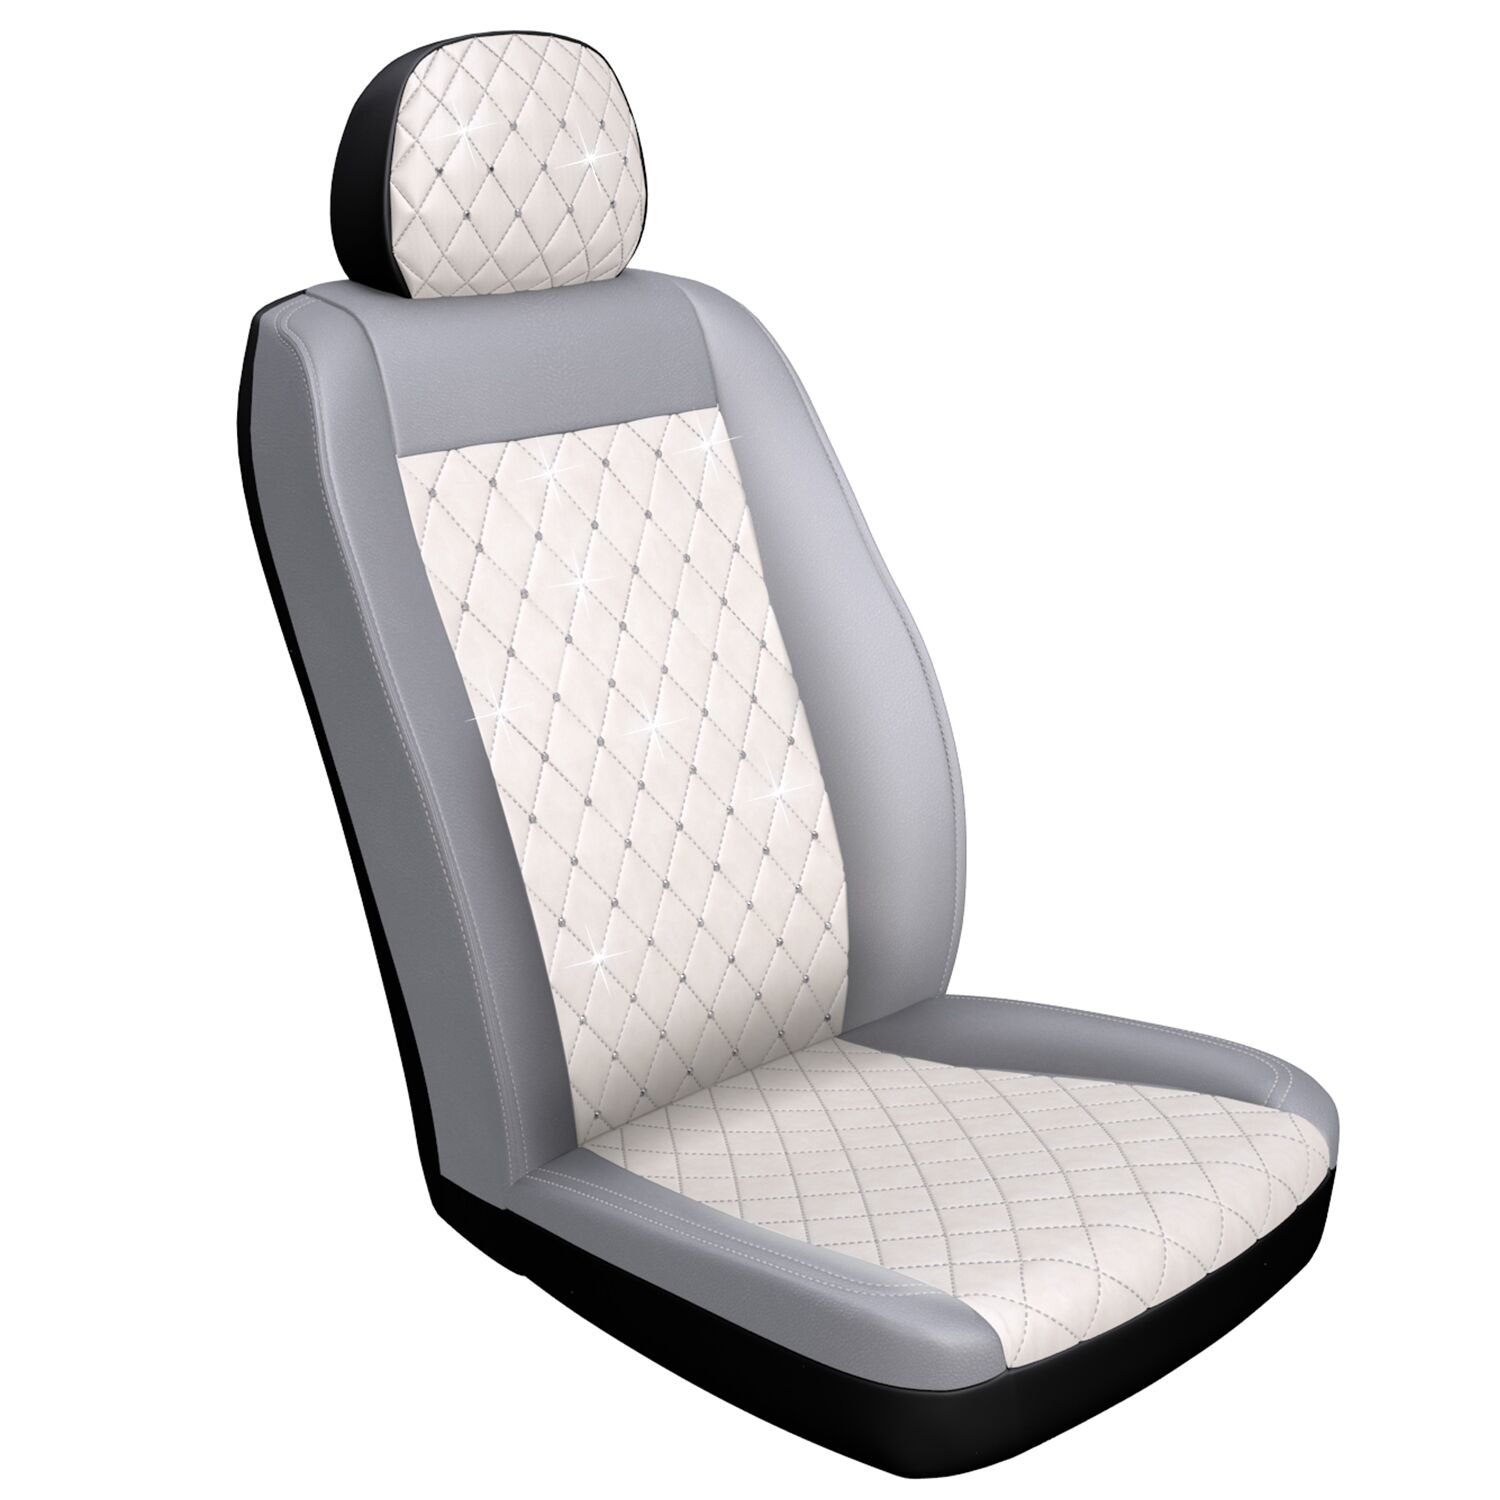 Enjoyable Premium Diamond Seat Cover With Crystals From Swarovski White Inzonedesignstudio Interior Chair Design Inzonedesignstudiocom